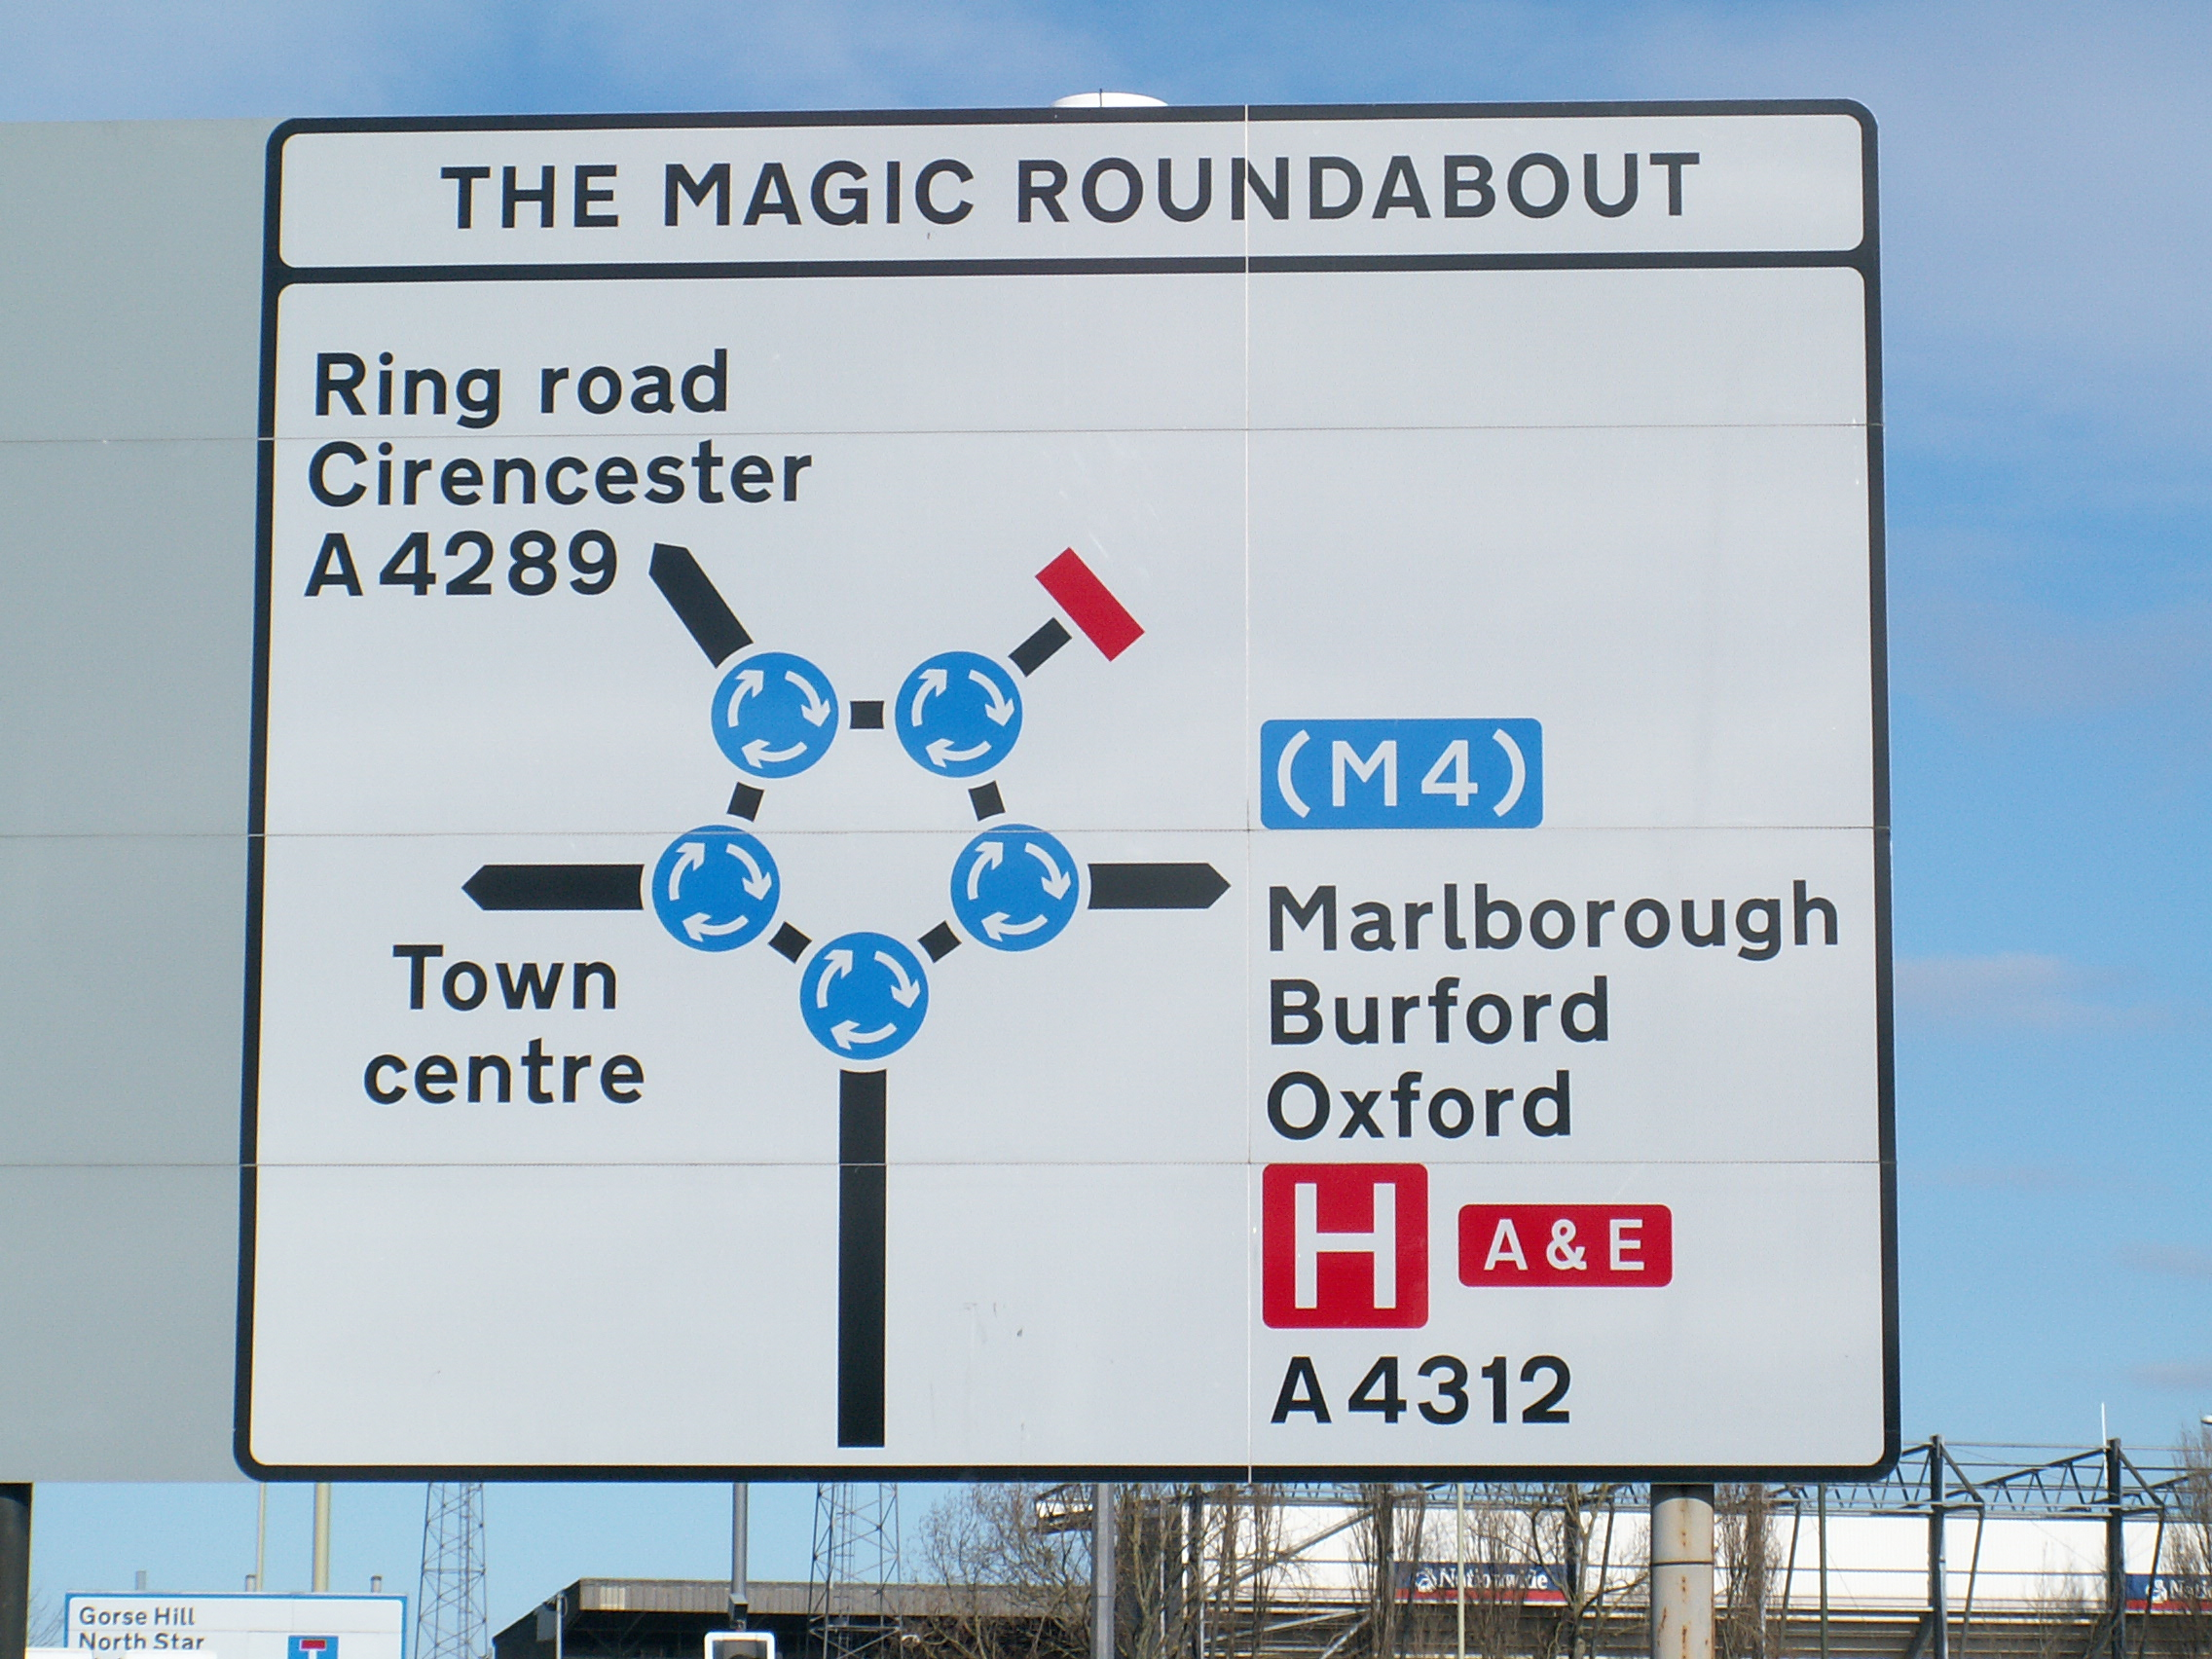 http://upload.wikimedia.org/wikipedia/commons/5/58/Magic_Roundabout_Schild_db.jpg